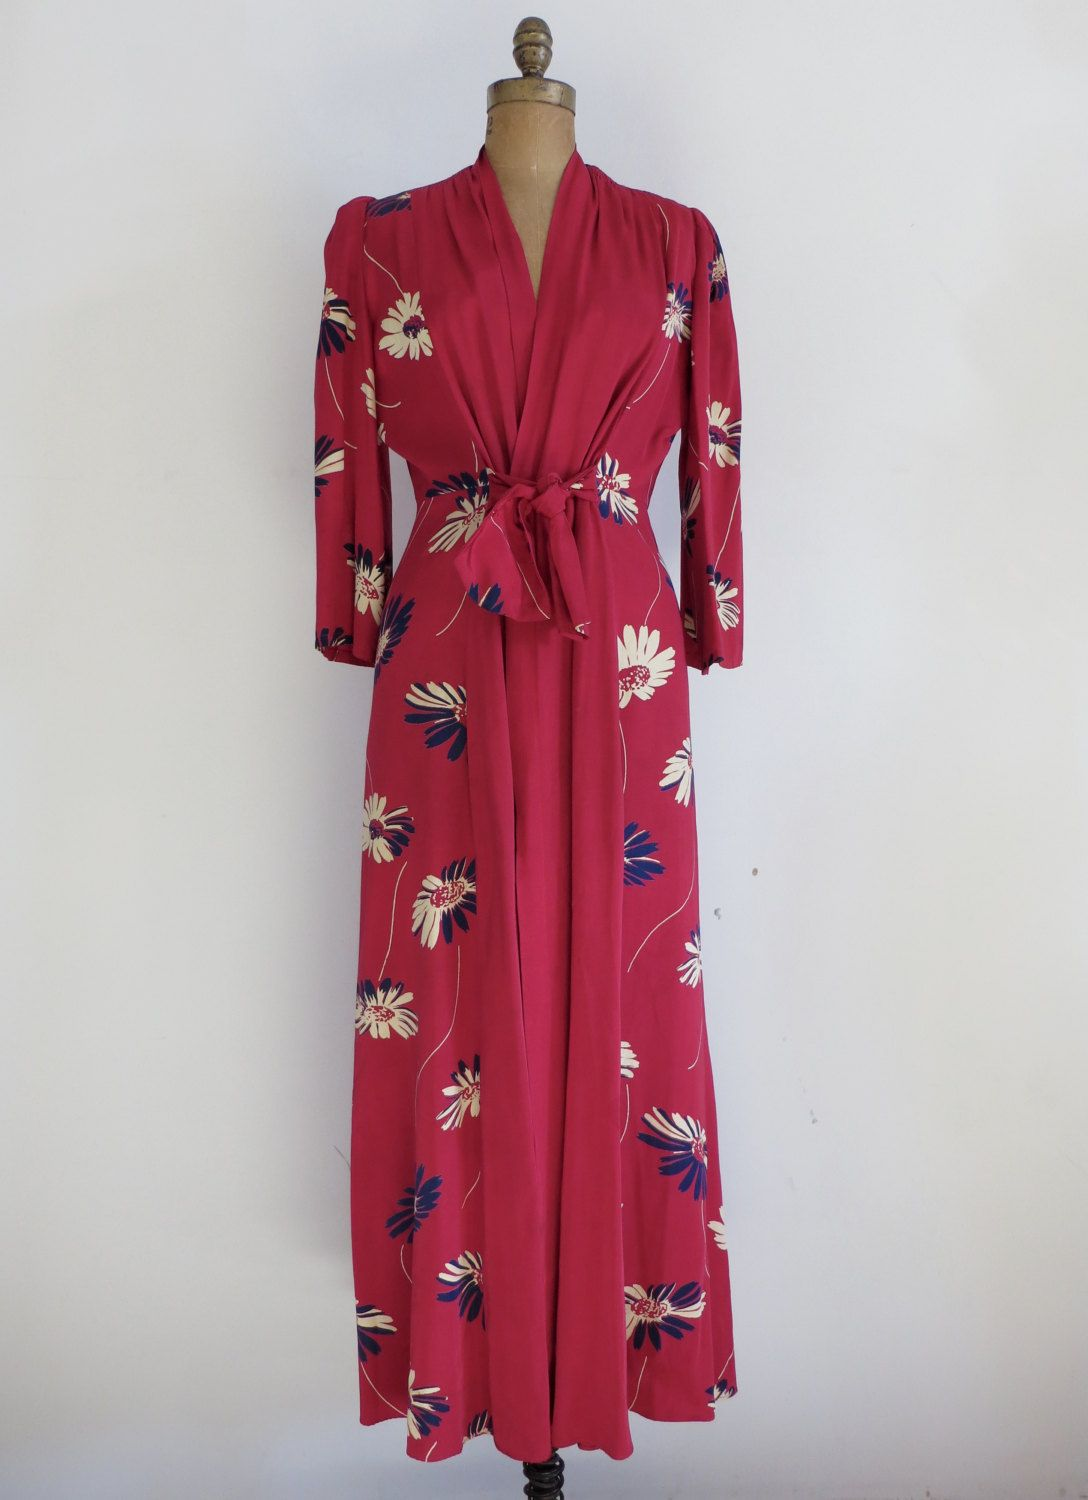 Vintage 1940 S Robe 40 S Floral Dressing Gown 40 S Nightgown Hollywood 1940 S Dressing Gown 40 S Hollywood Robe Floral Gown Dress 1940s Outfits Vintage Fashion